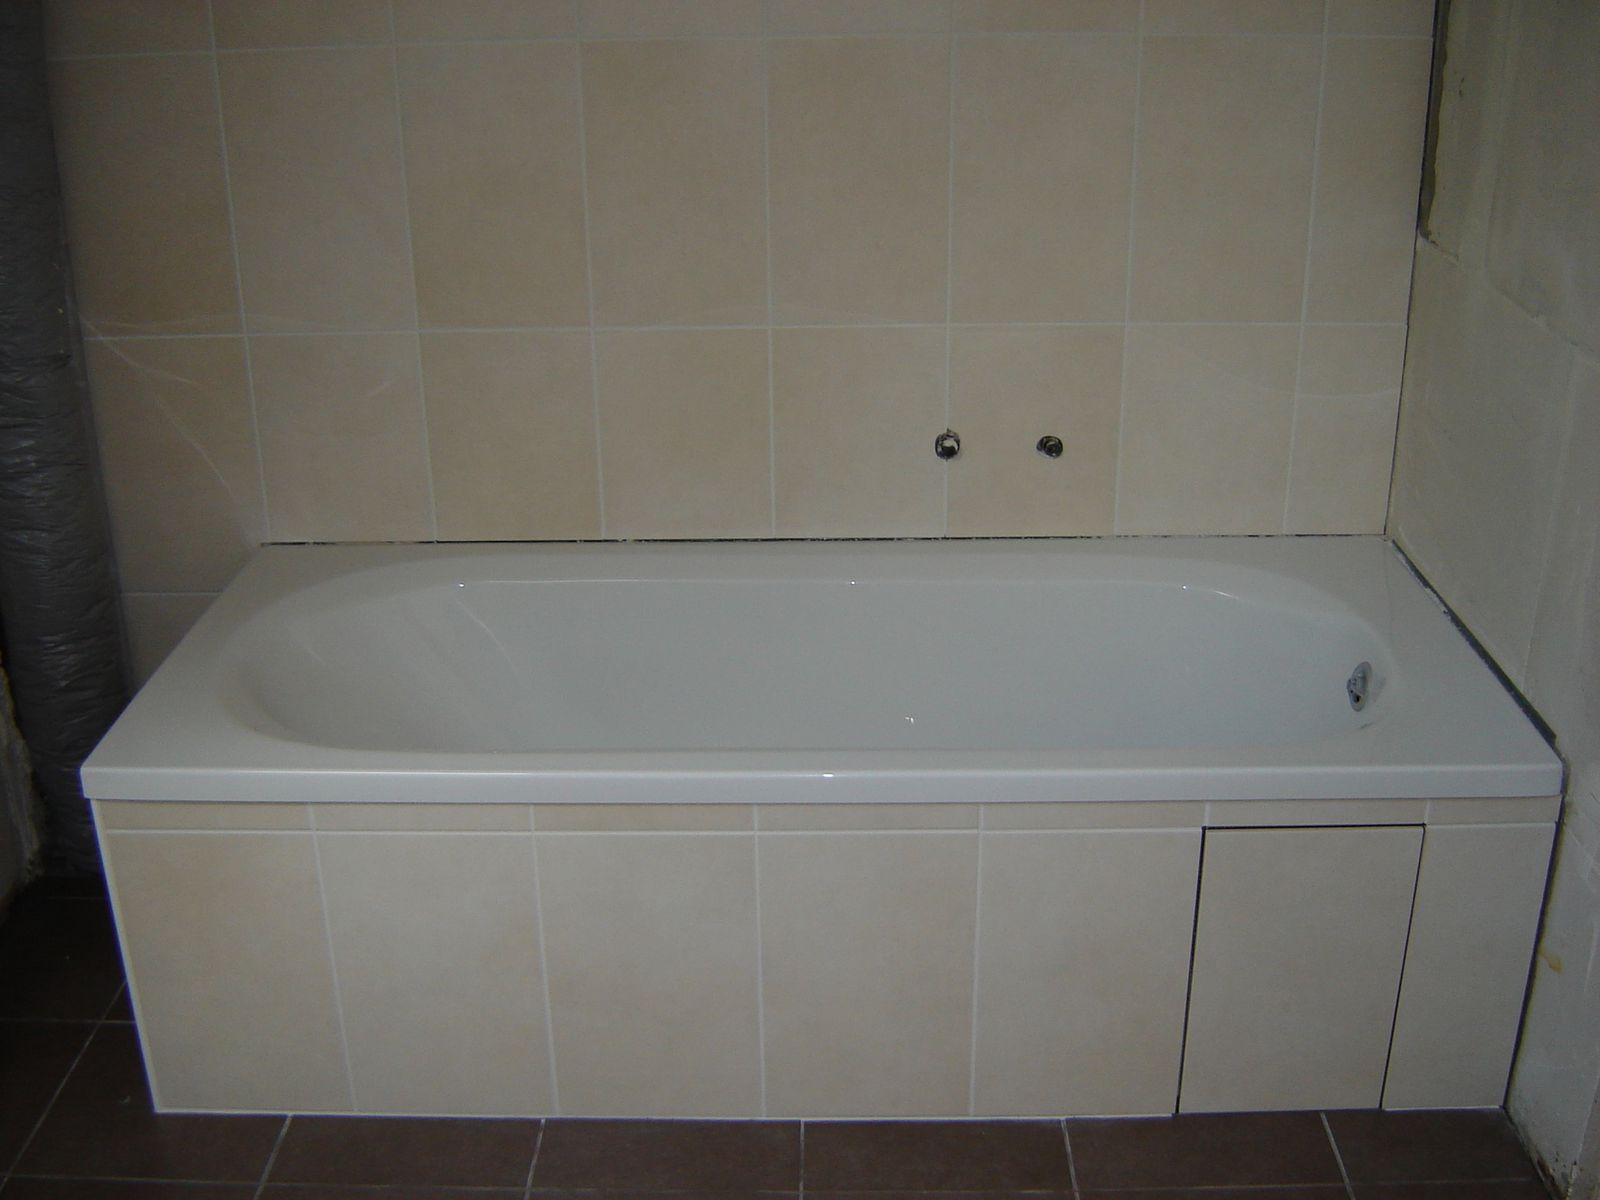 Carrelage sdb my sweet home - Baignoire a carreler ...